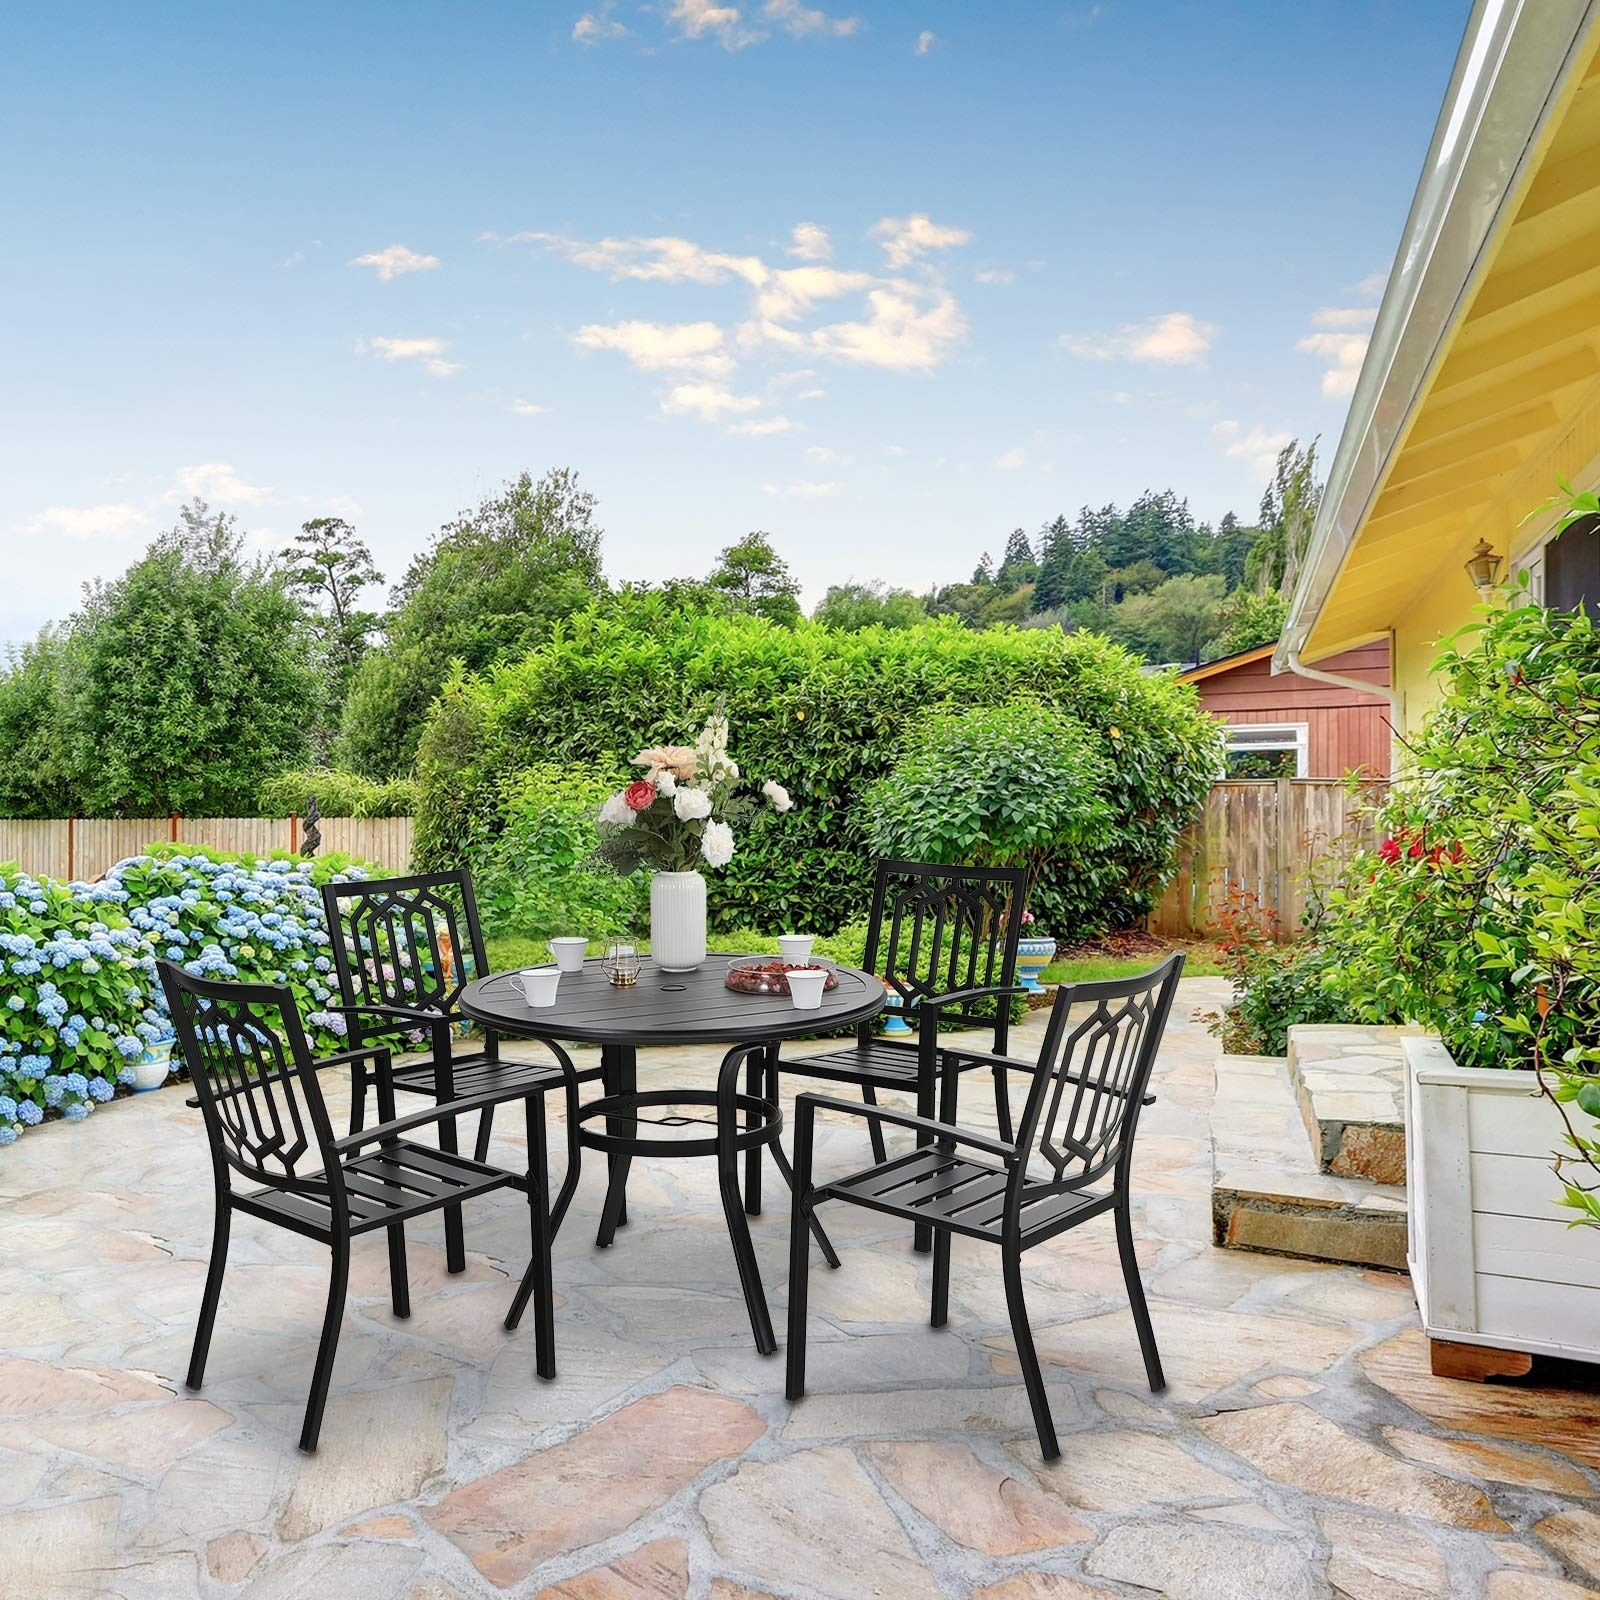 Sophia William 5 Piece Outdoor Patio Dining Set 4 Metal Stackable Dining Chairs And 1 Round 37 8 Diameter Umbrella Table Overstock 32862255